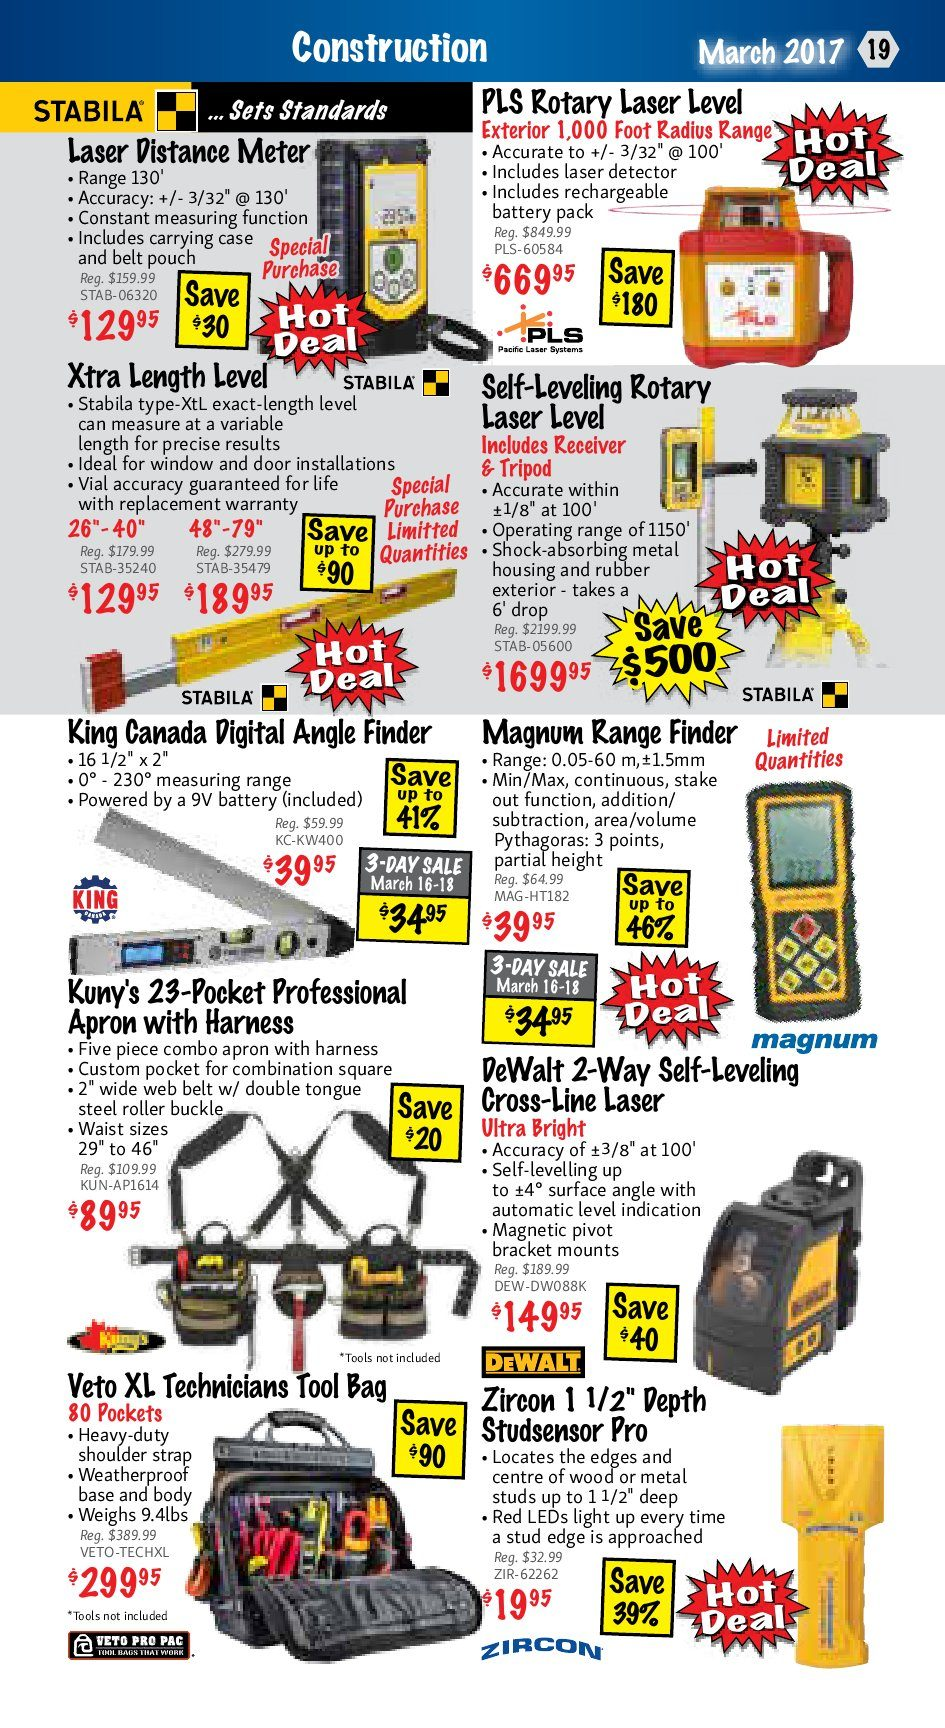 Kms Tools Weekly Flyer Power Tool Sale Mar 1 31 Klein 90 To 240v Ac Digital Circuit Breaker Finder Trade Me